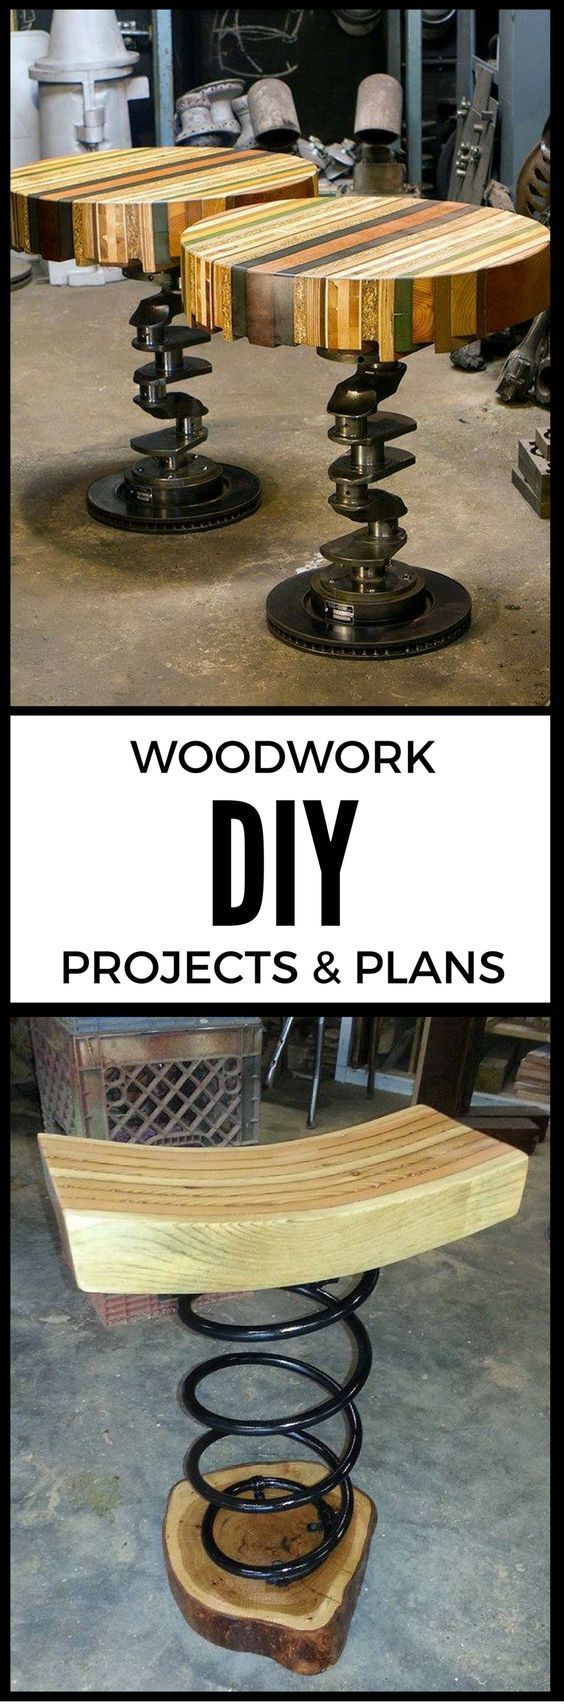 16000 diy woodworking projects do it yourself diy garage makeover 16000 diy woodworking projects do it yourself diy garage makeover ideas include storage organization solutioingenieria Images